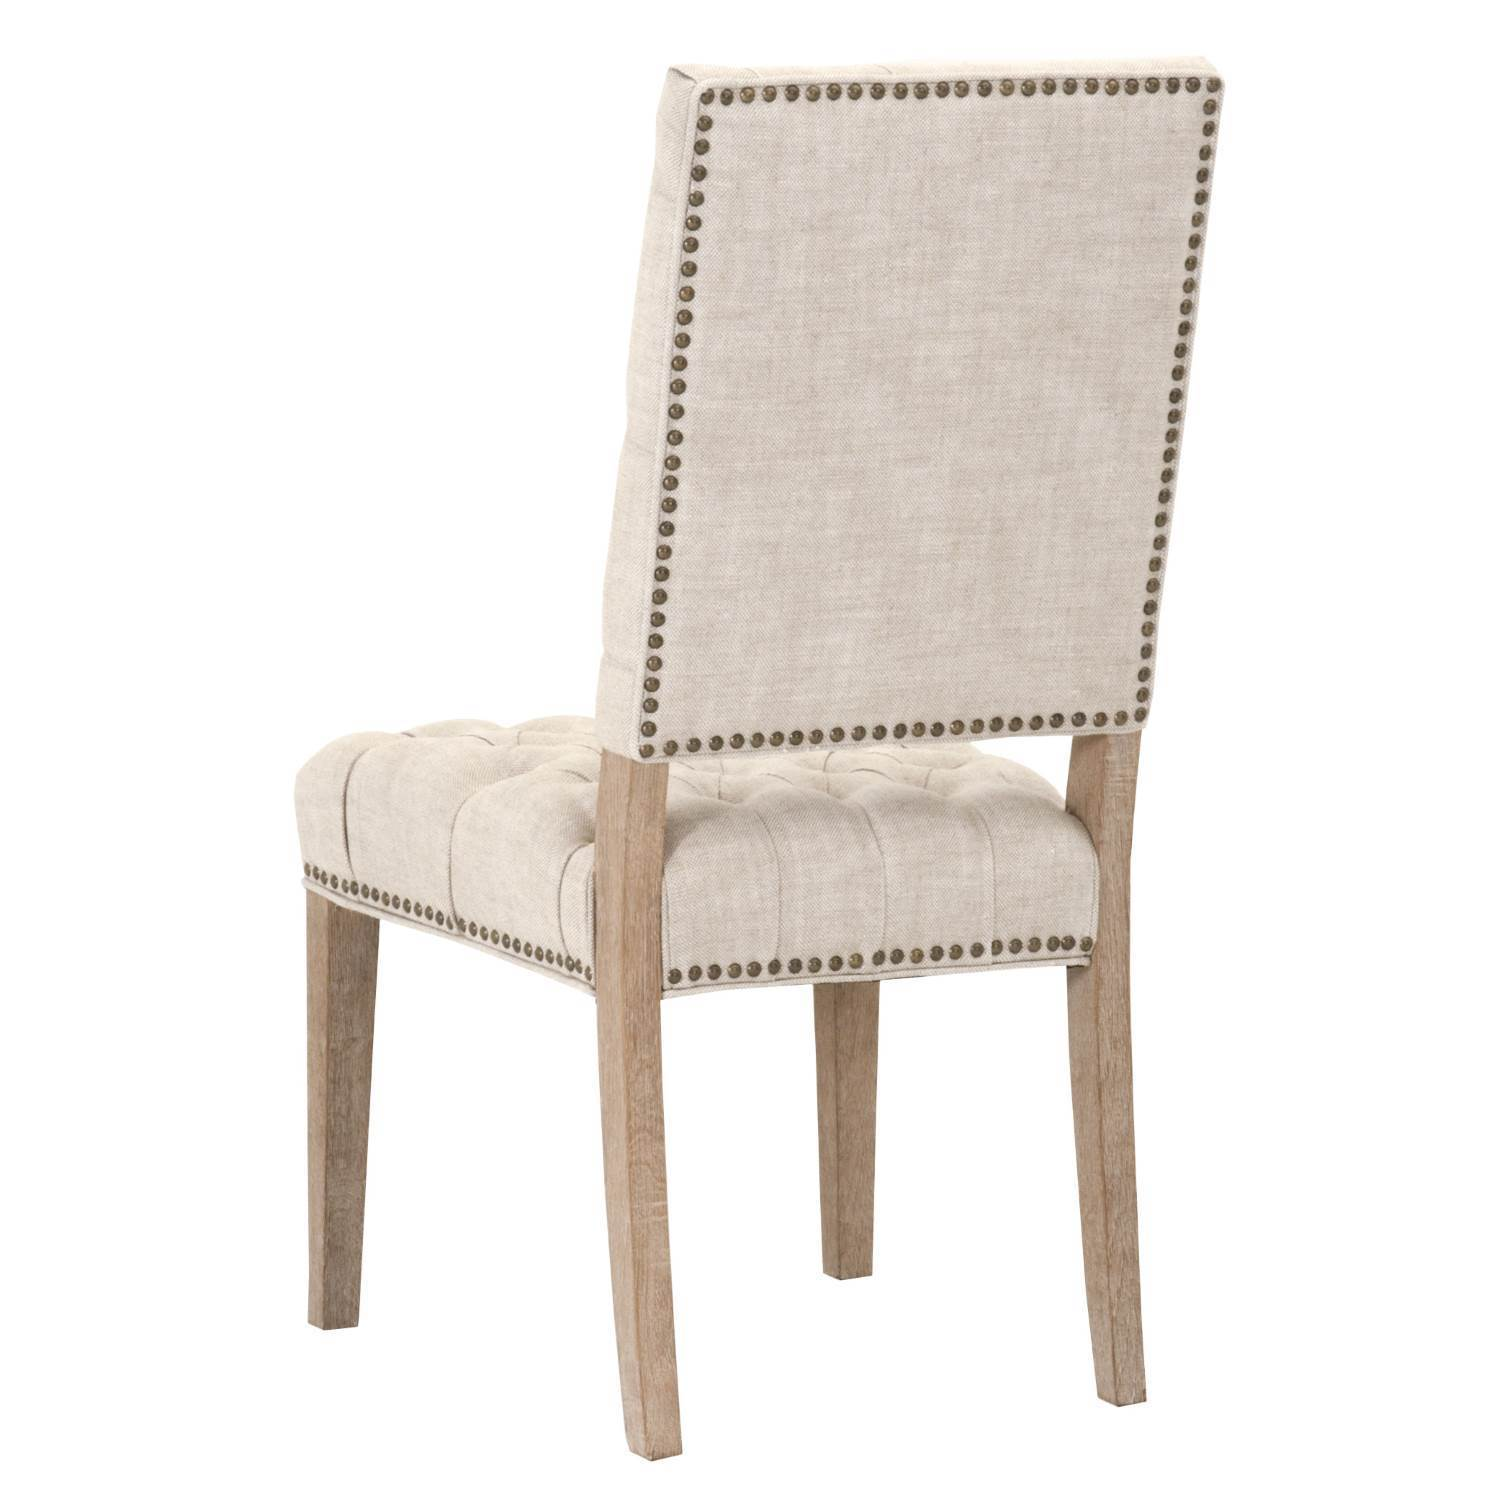 Grey Manor York Bisque French Linen Dining Chairs (Set Of 2)   Free  Shipping Today   Overstock   20216196